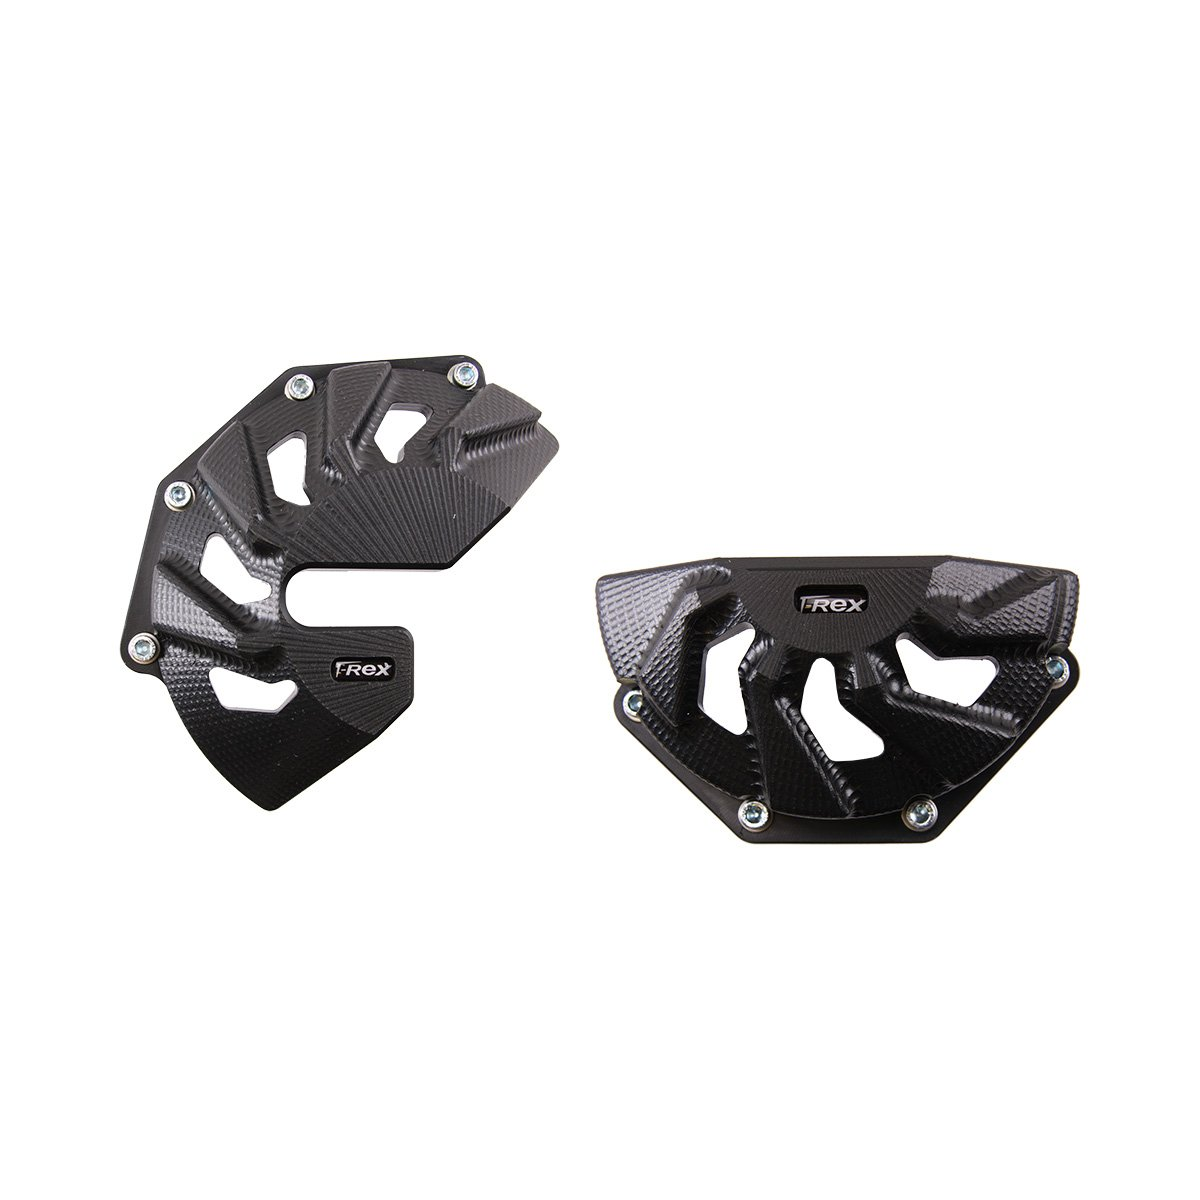 T-Rex Racing 2017 - 2018 Suzuki GSX250R Engine Case Covers